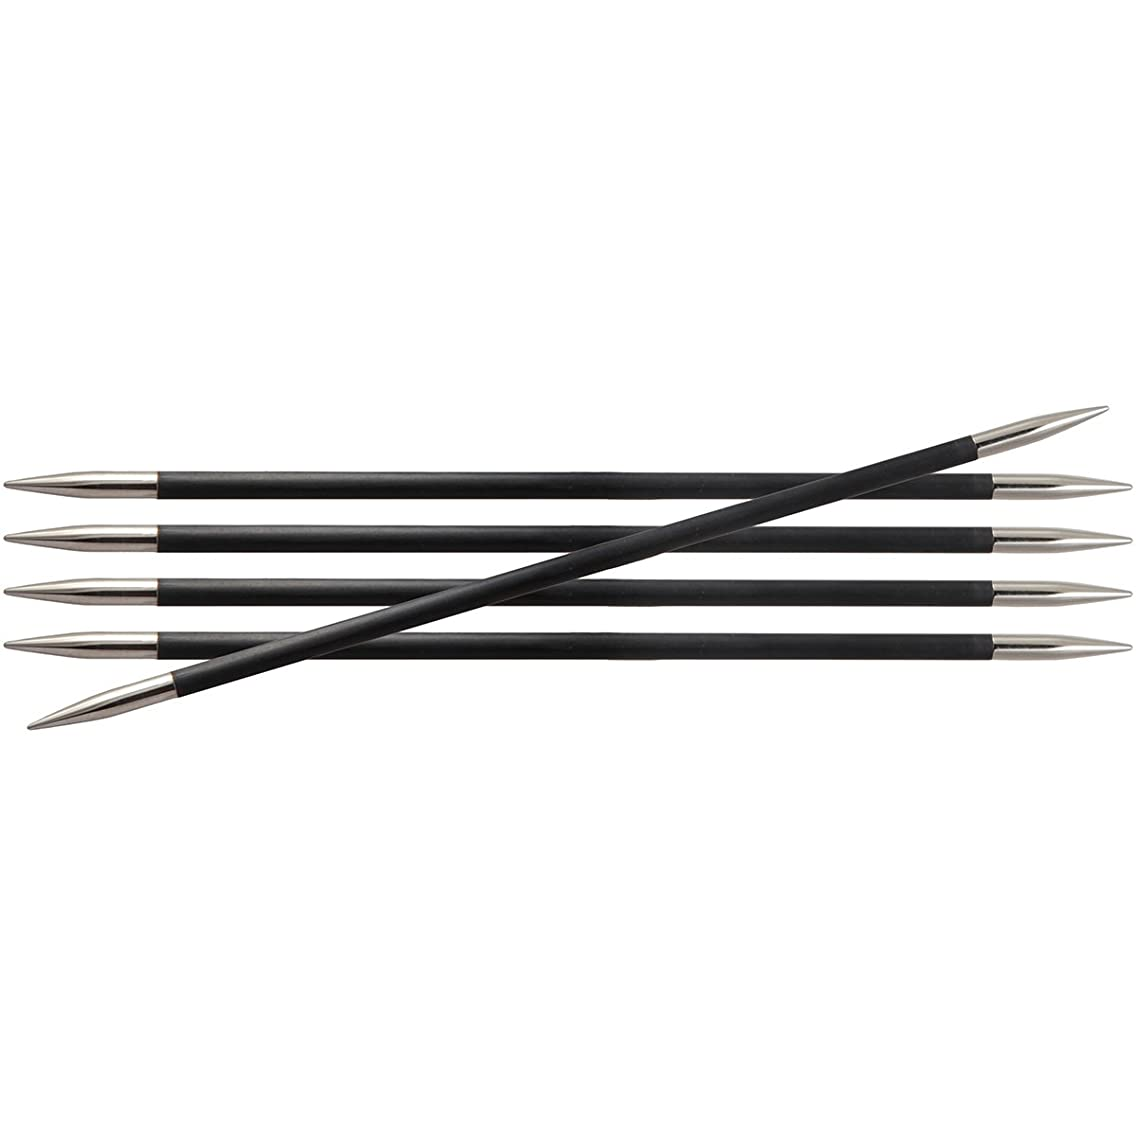 Knitter's Pride KP110127 2/2.75mm Karbonz Double Pointed Needles, 8